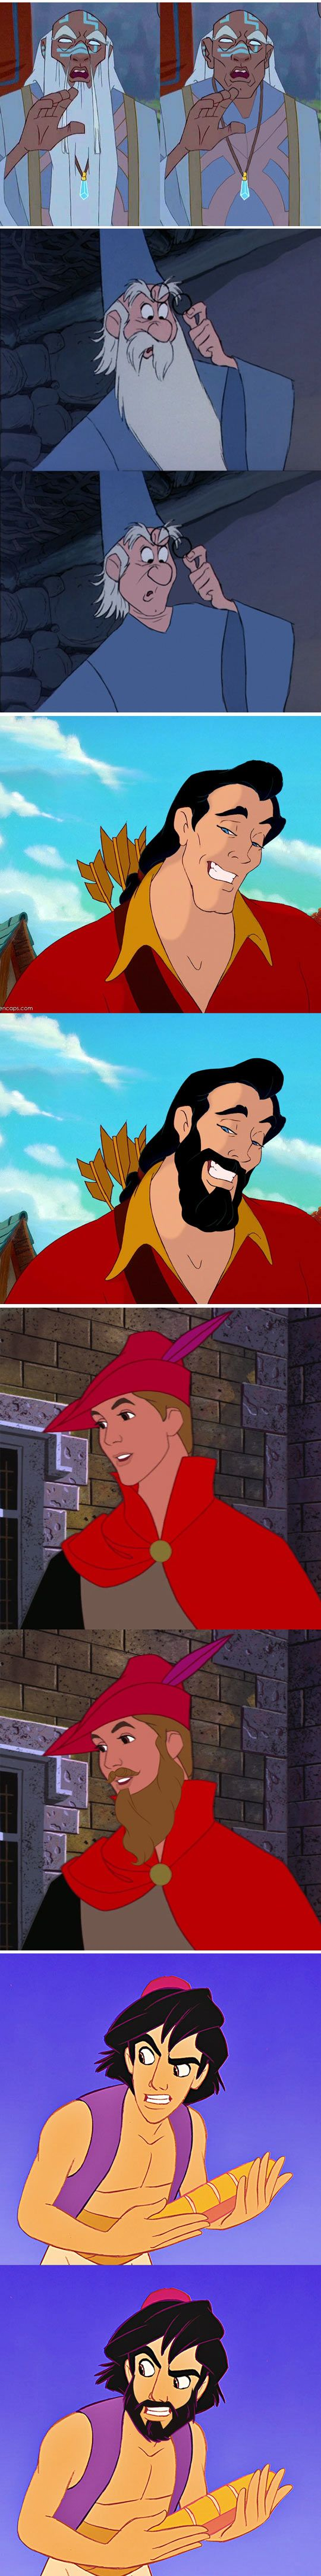 What happens when you remove the beards from famous Disney characters, part 2. Some with beards.